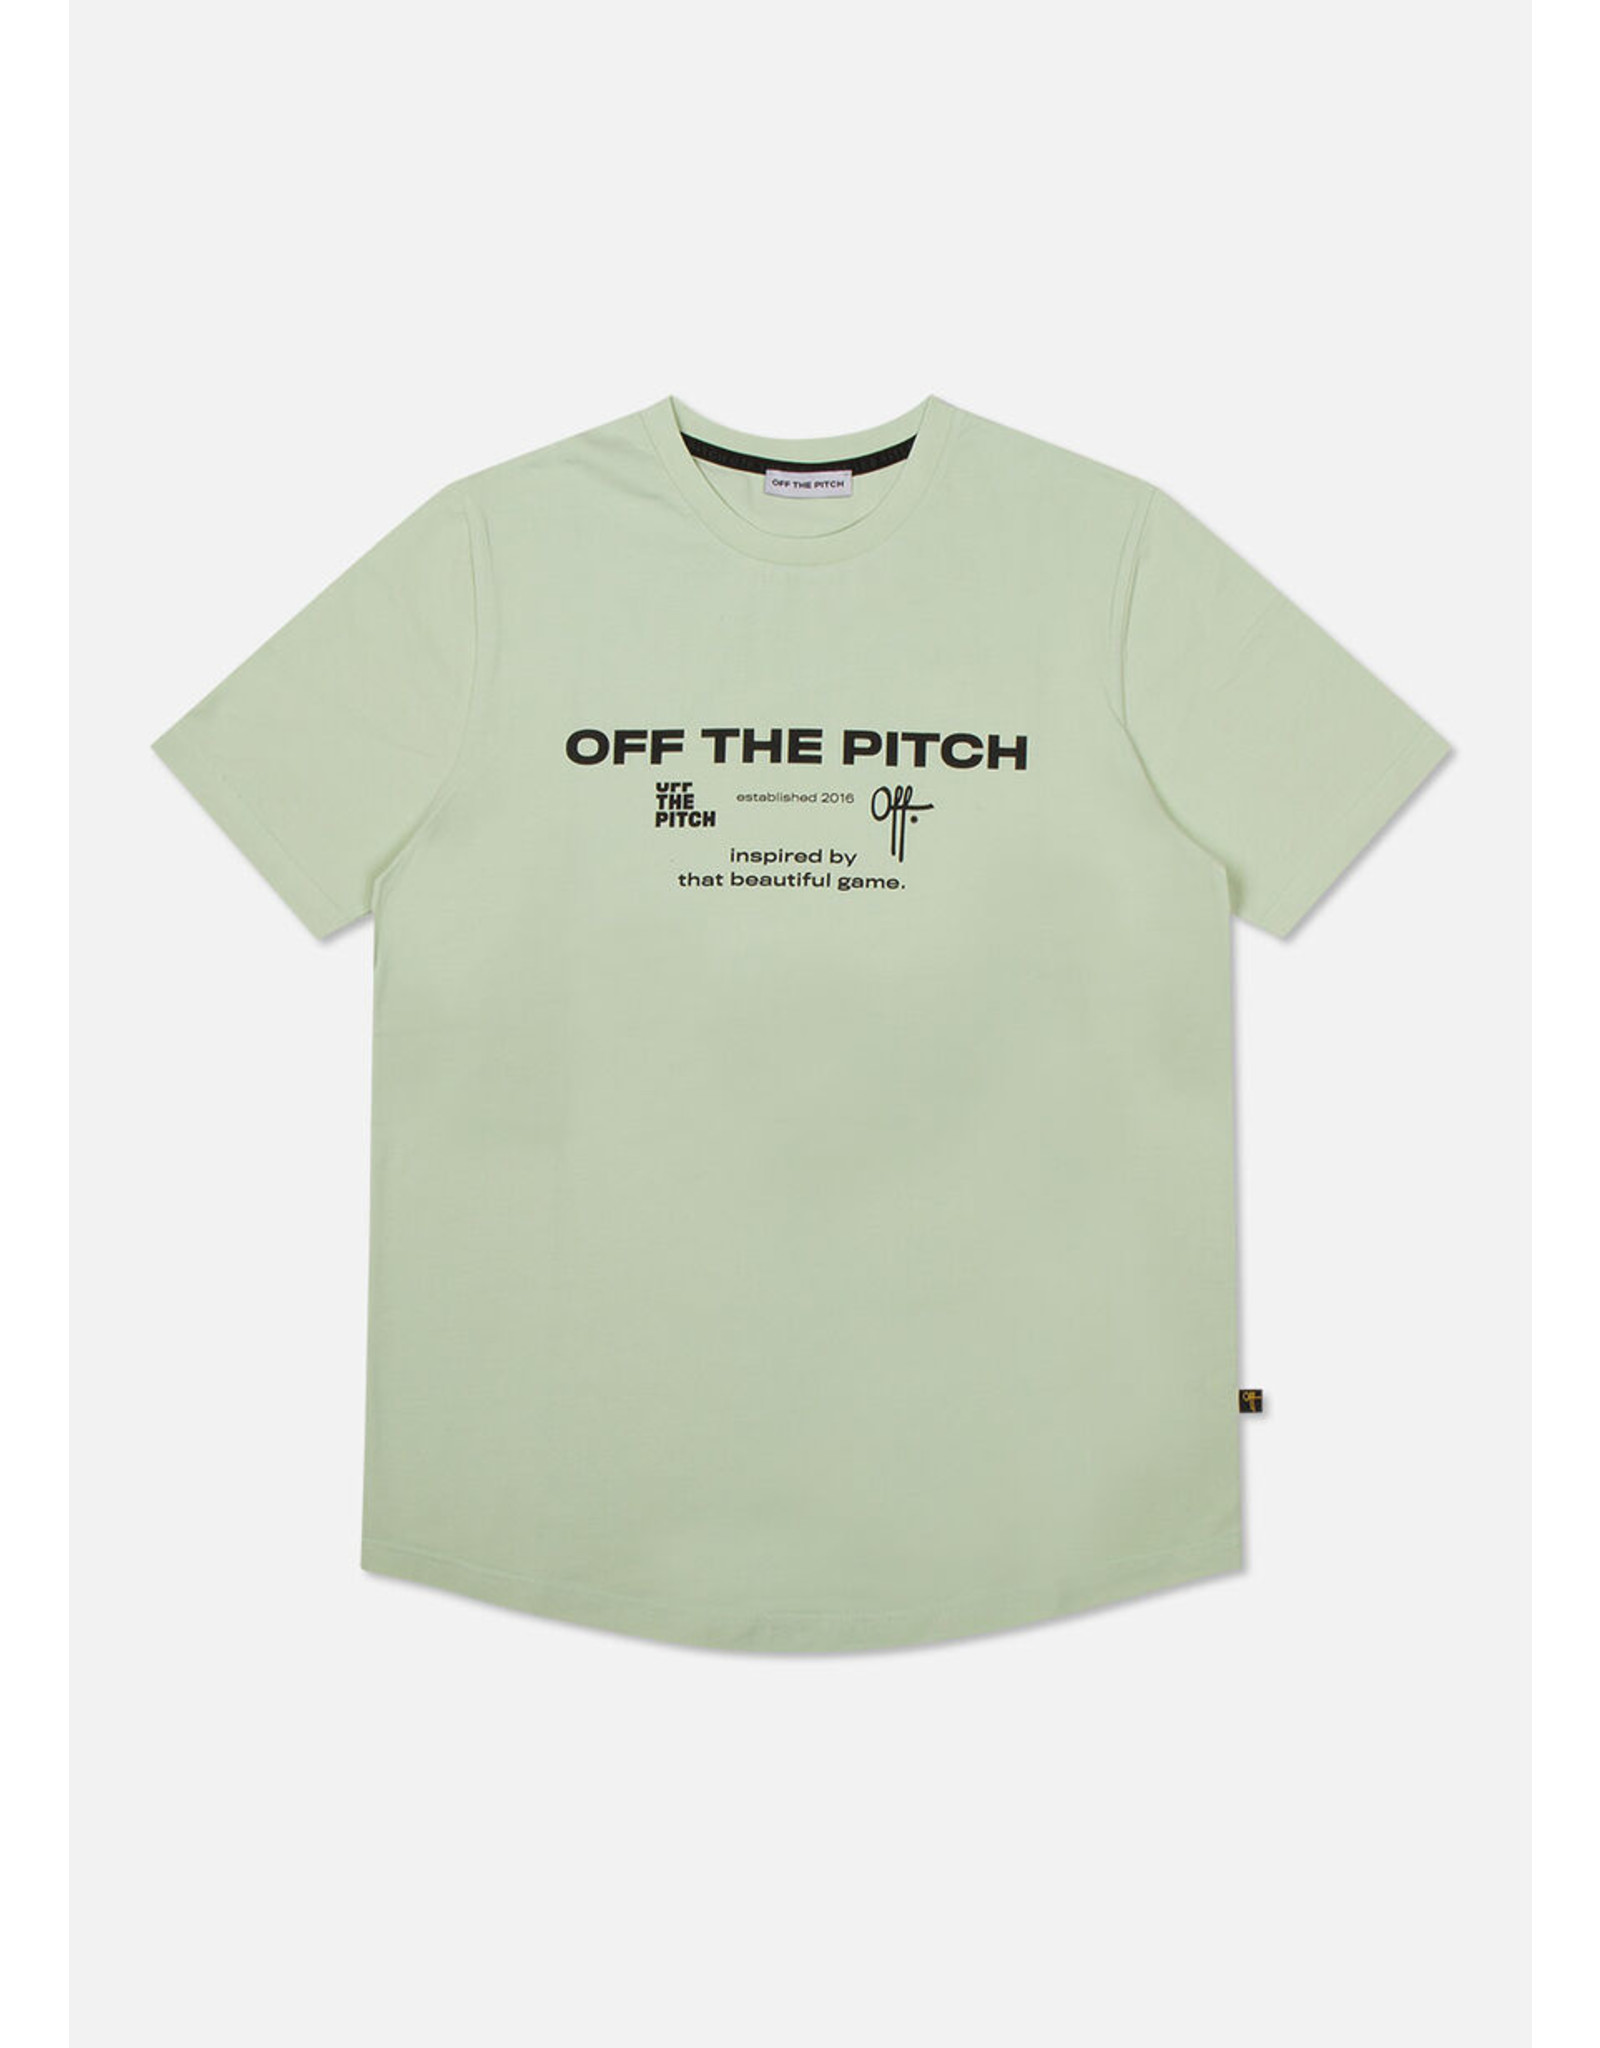 Off the pitch The Sage Slimfit Tee